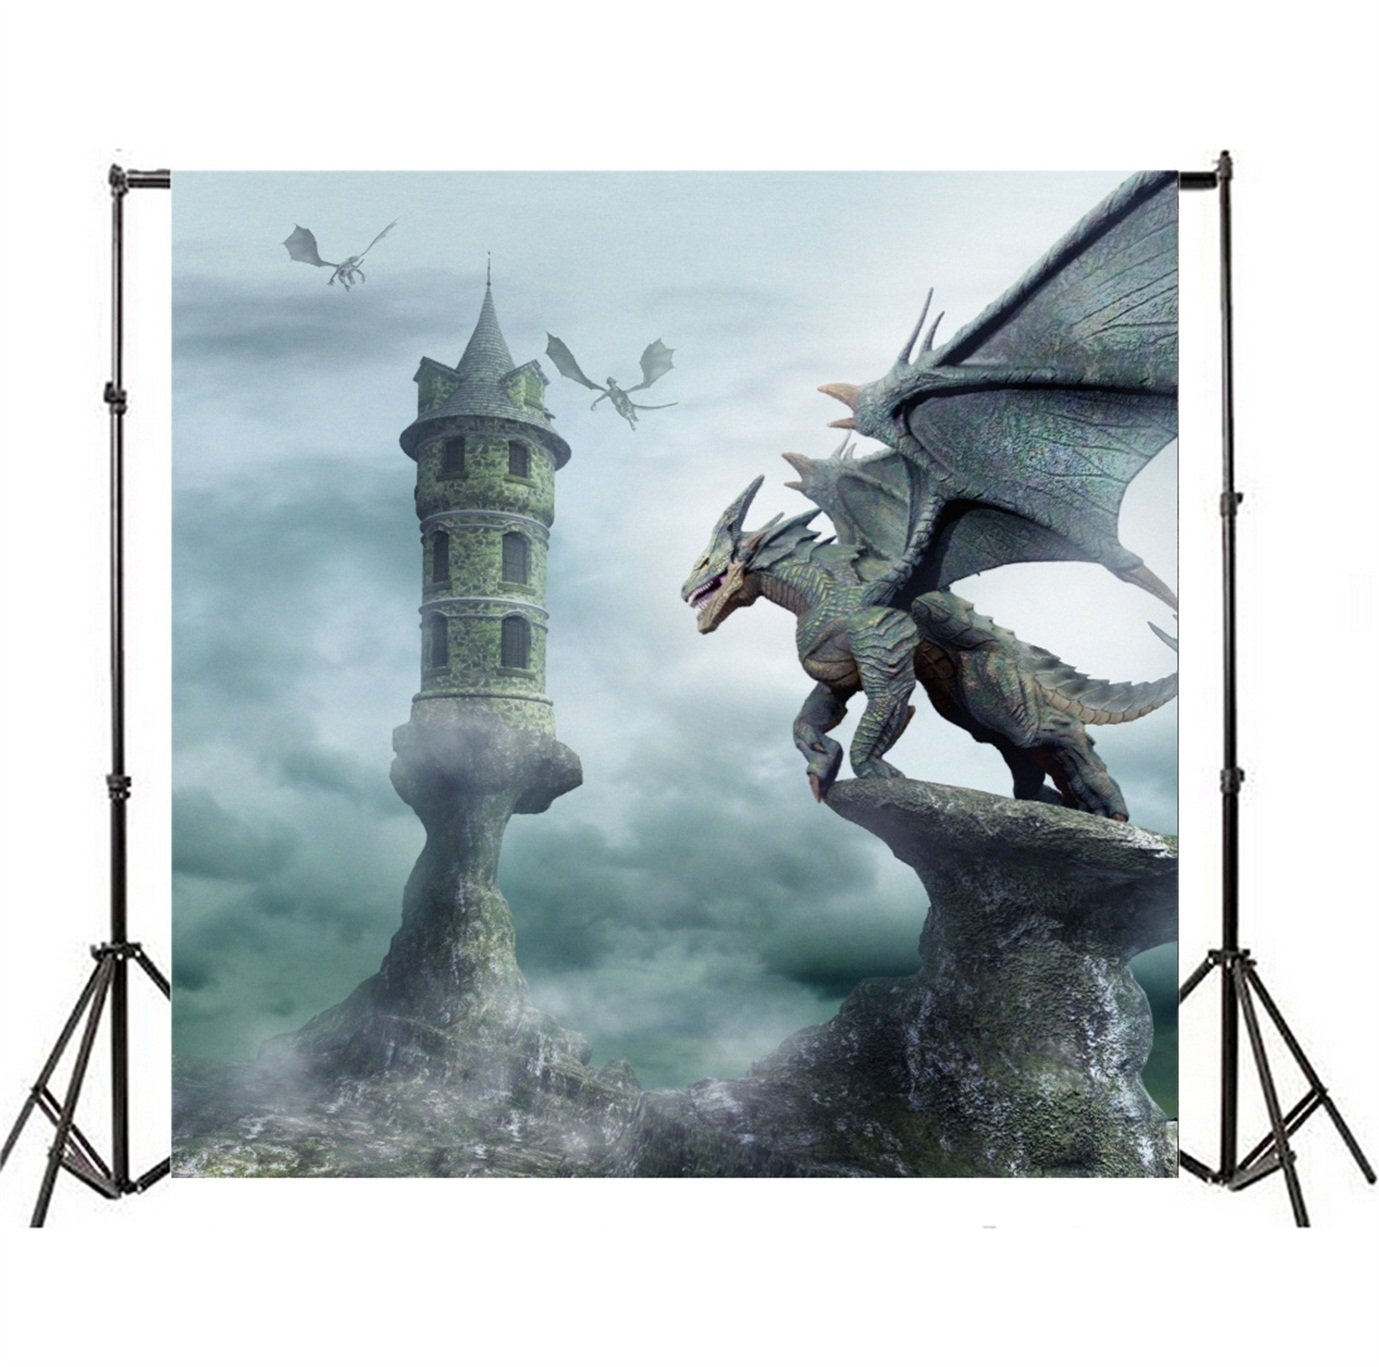 Csfoto 8x8ft Background For Dinosaur Dragon Castle Photography Backdrop Fantasy Abstract Rock Danger Flying Cool Devil Photo Studio Props Kid Children